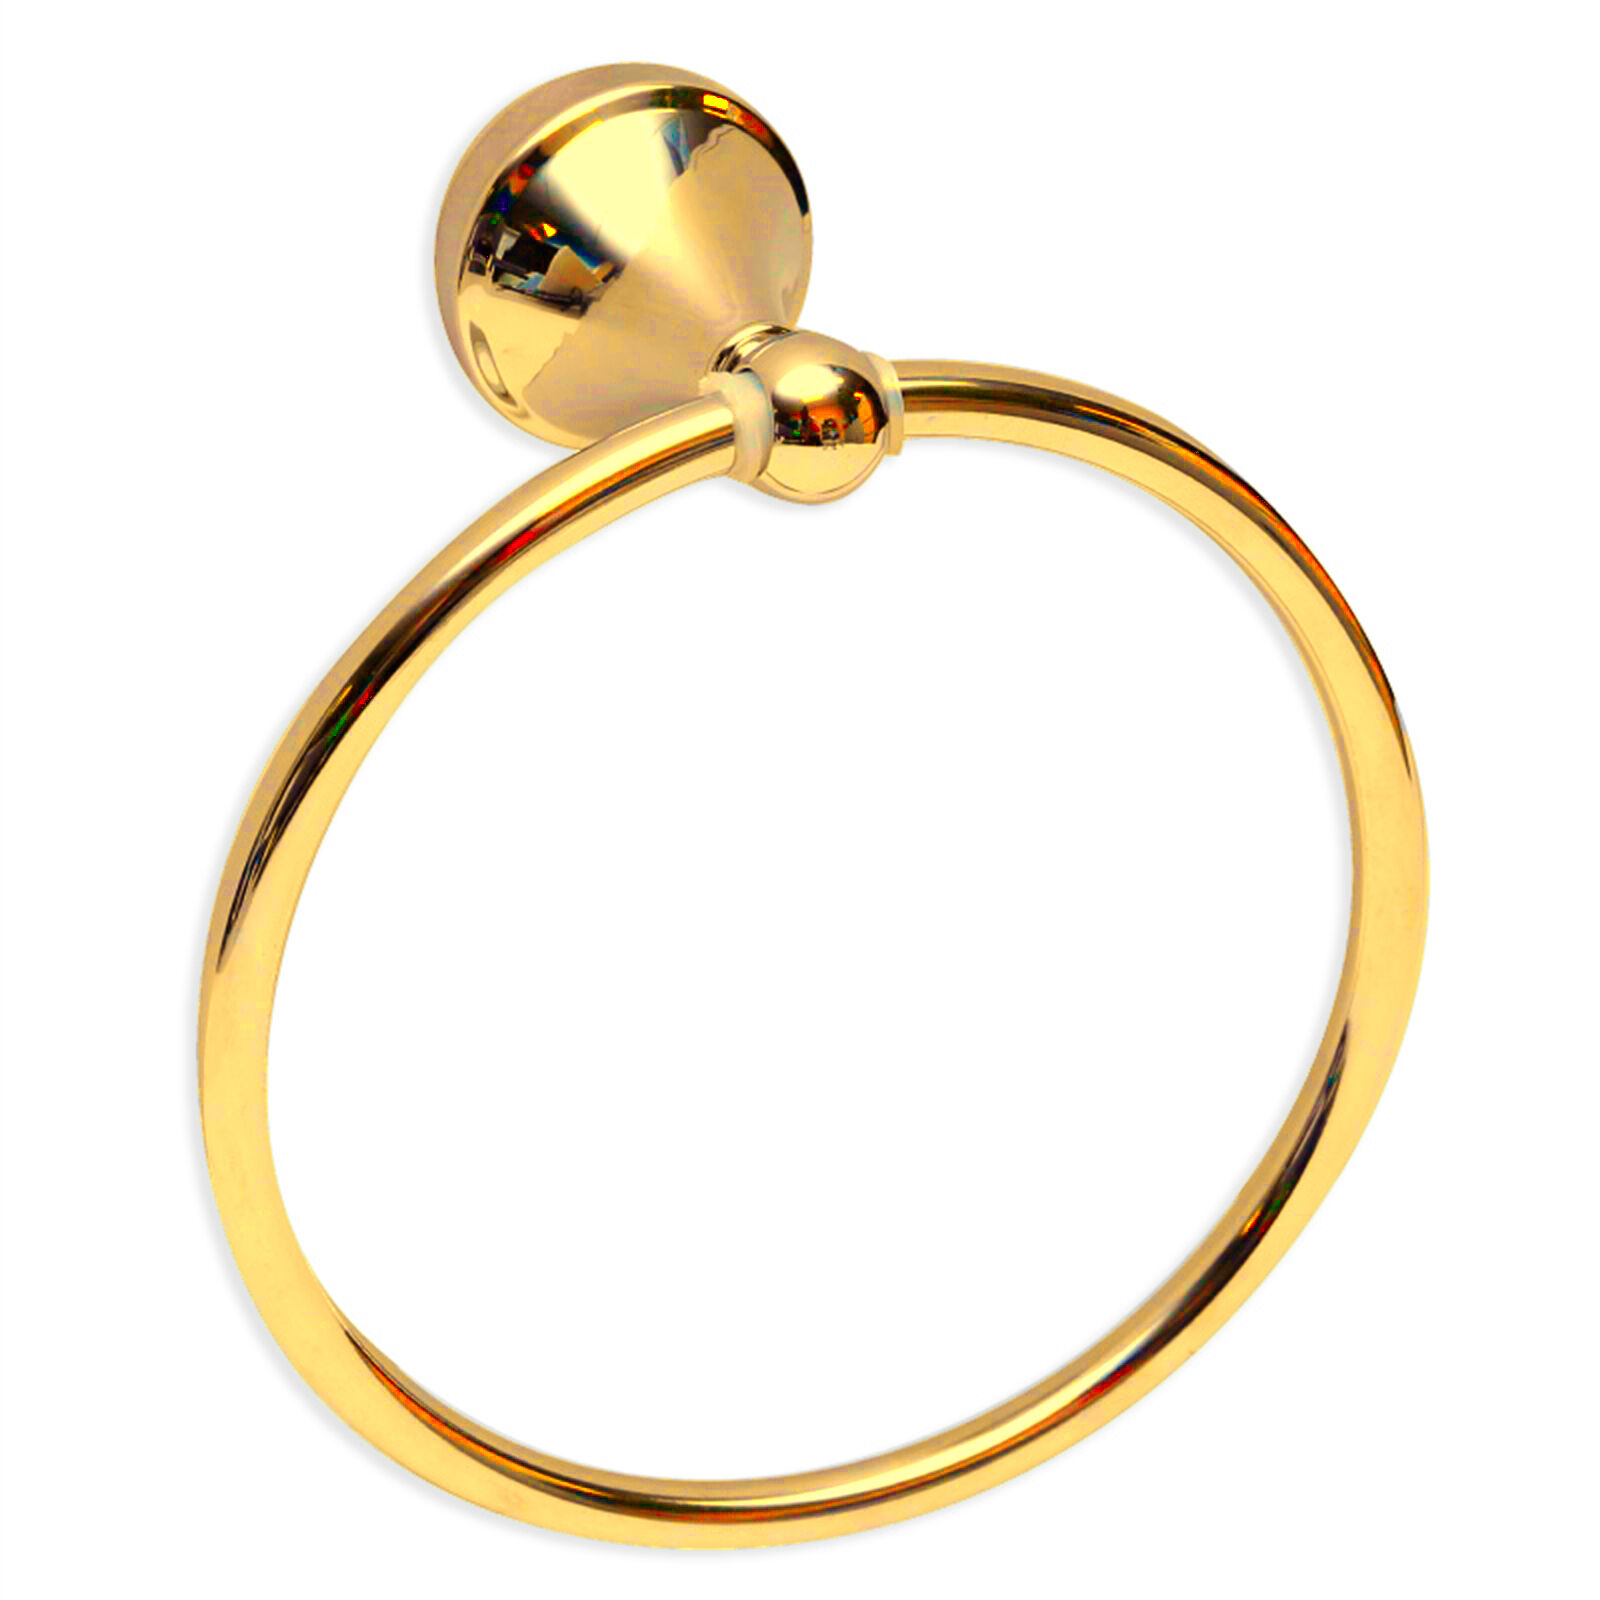 New Pure 24K gold Towel Ring pink by Enzo Barelli Bathroom Towel Holder Ring